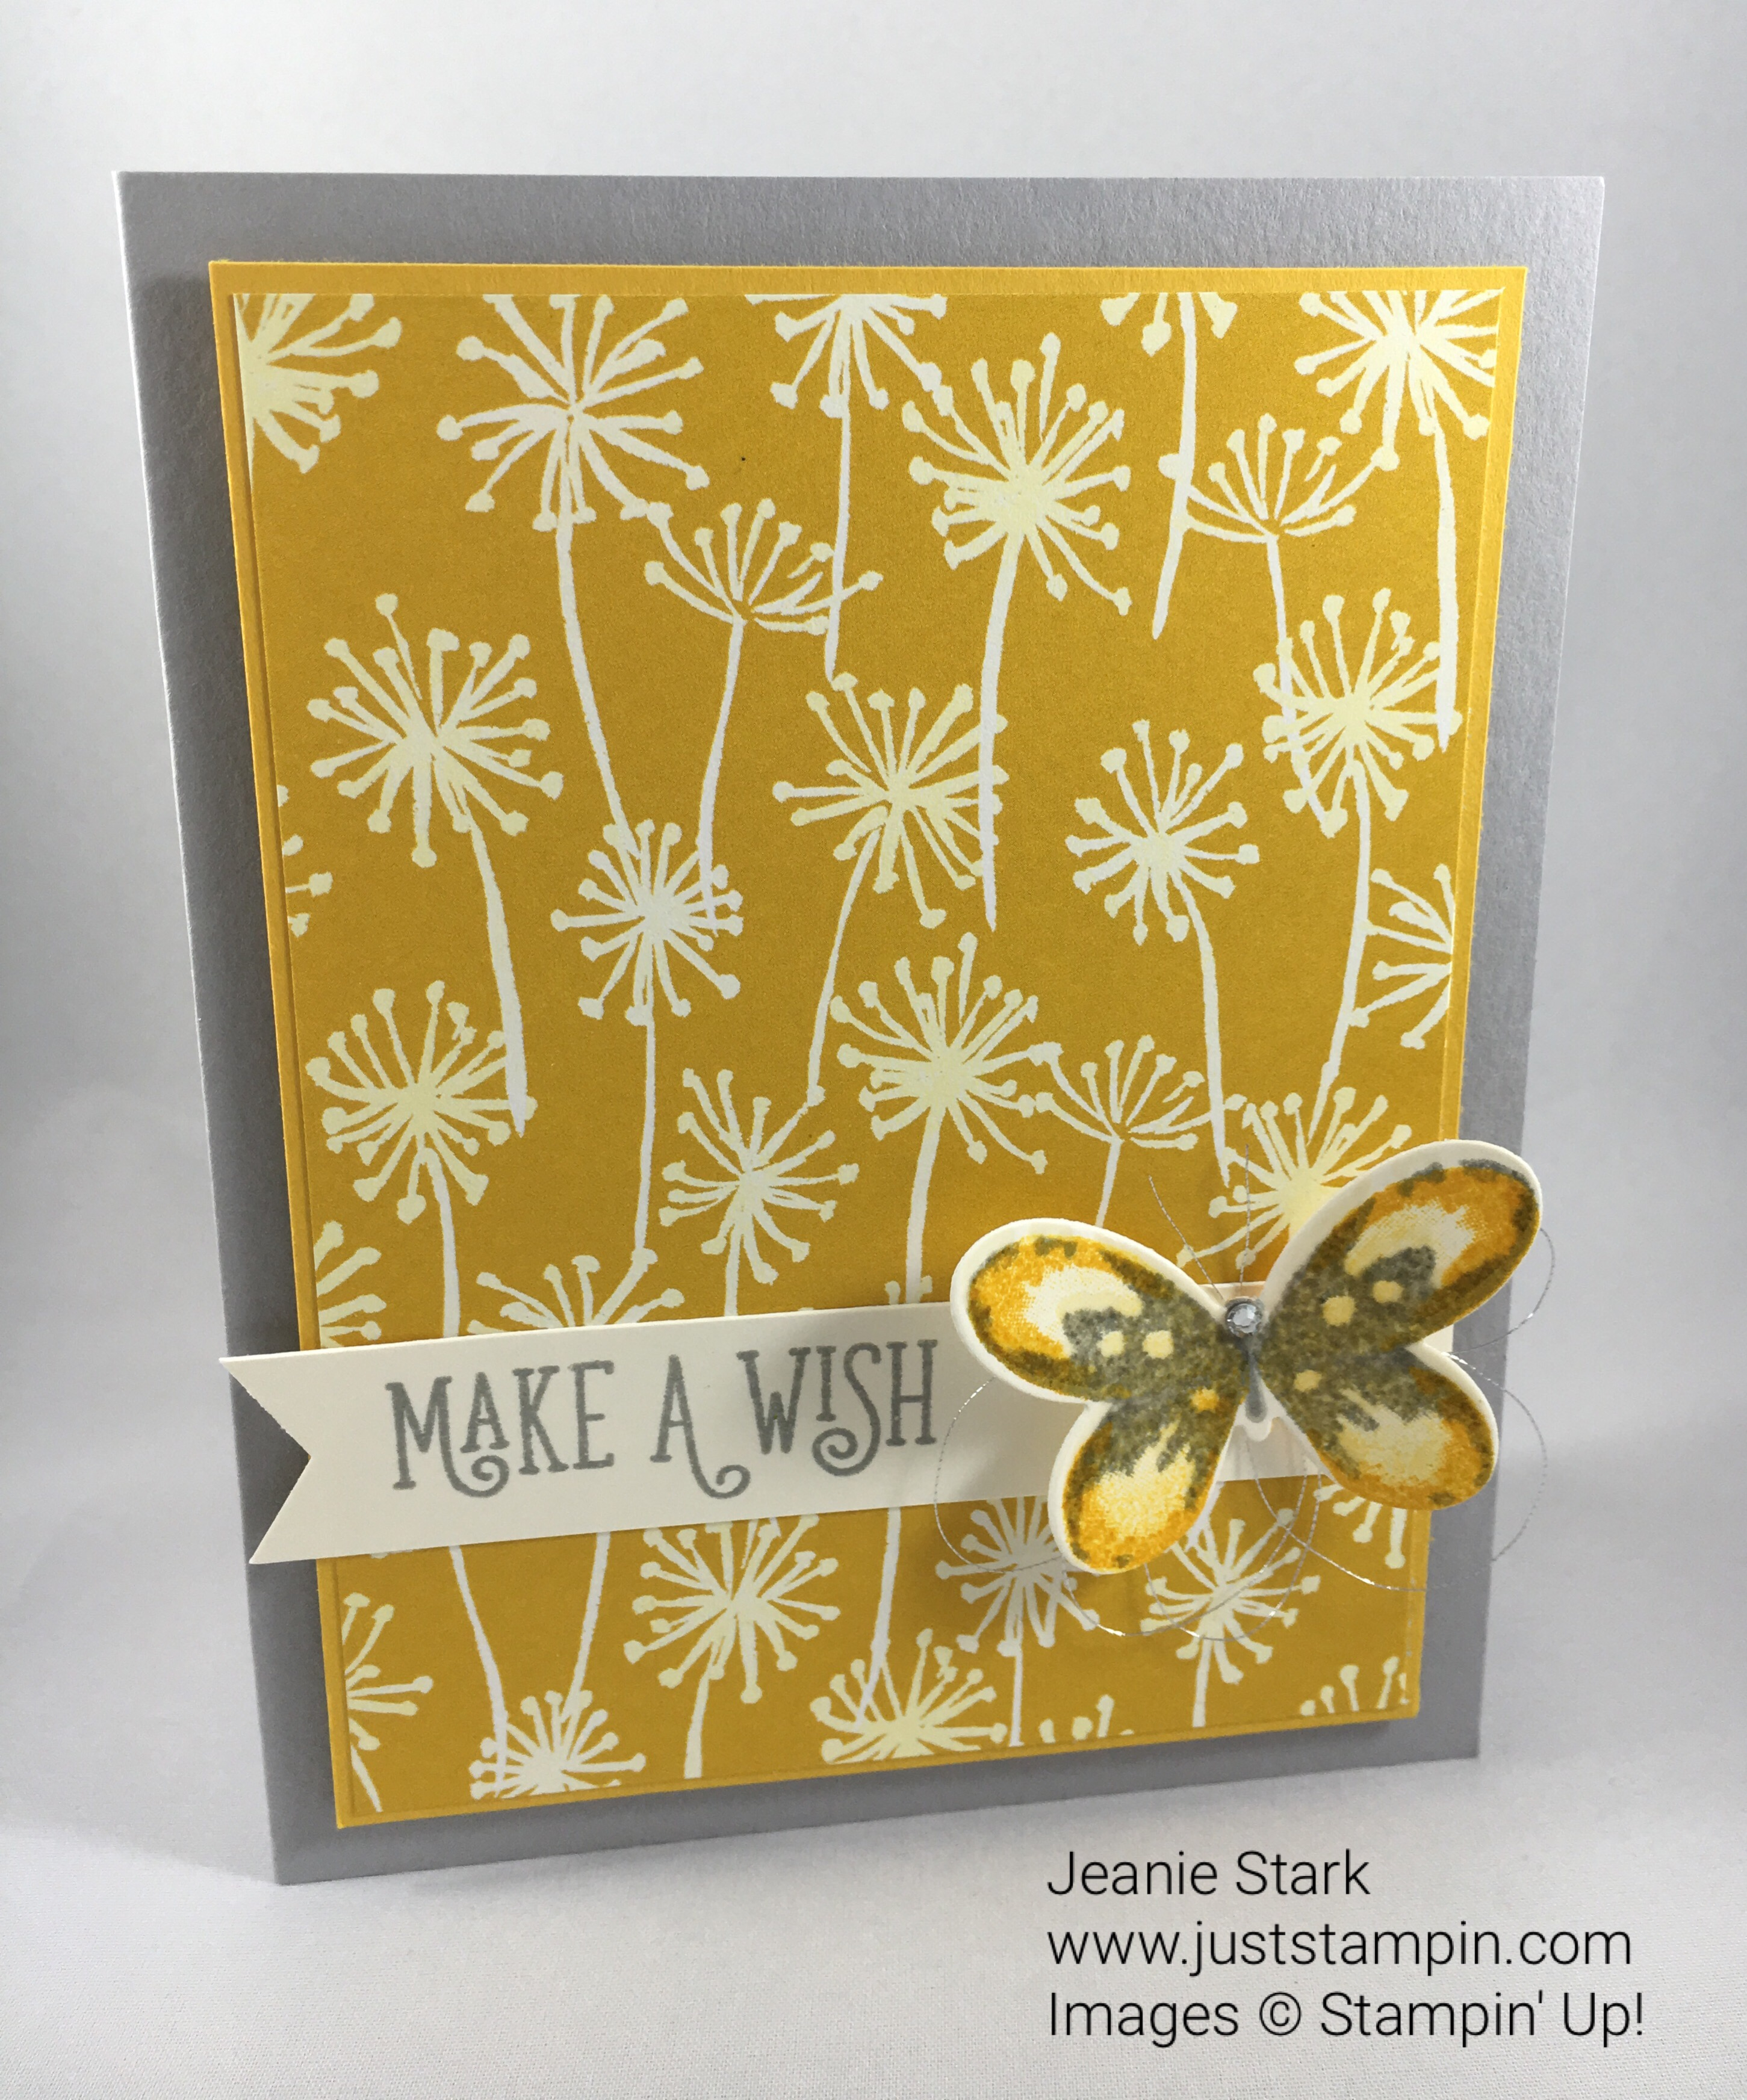 Stampin Up Happy Birthday Gorgeous birthday card idea using Whole Lot of Lovely Designer Series Paper - Jeanie Stark StampinUp